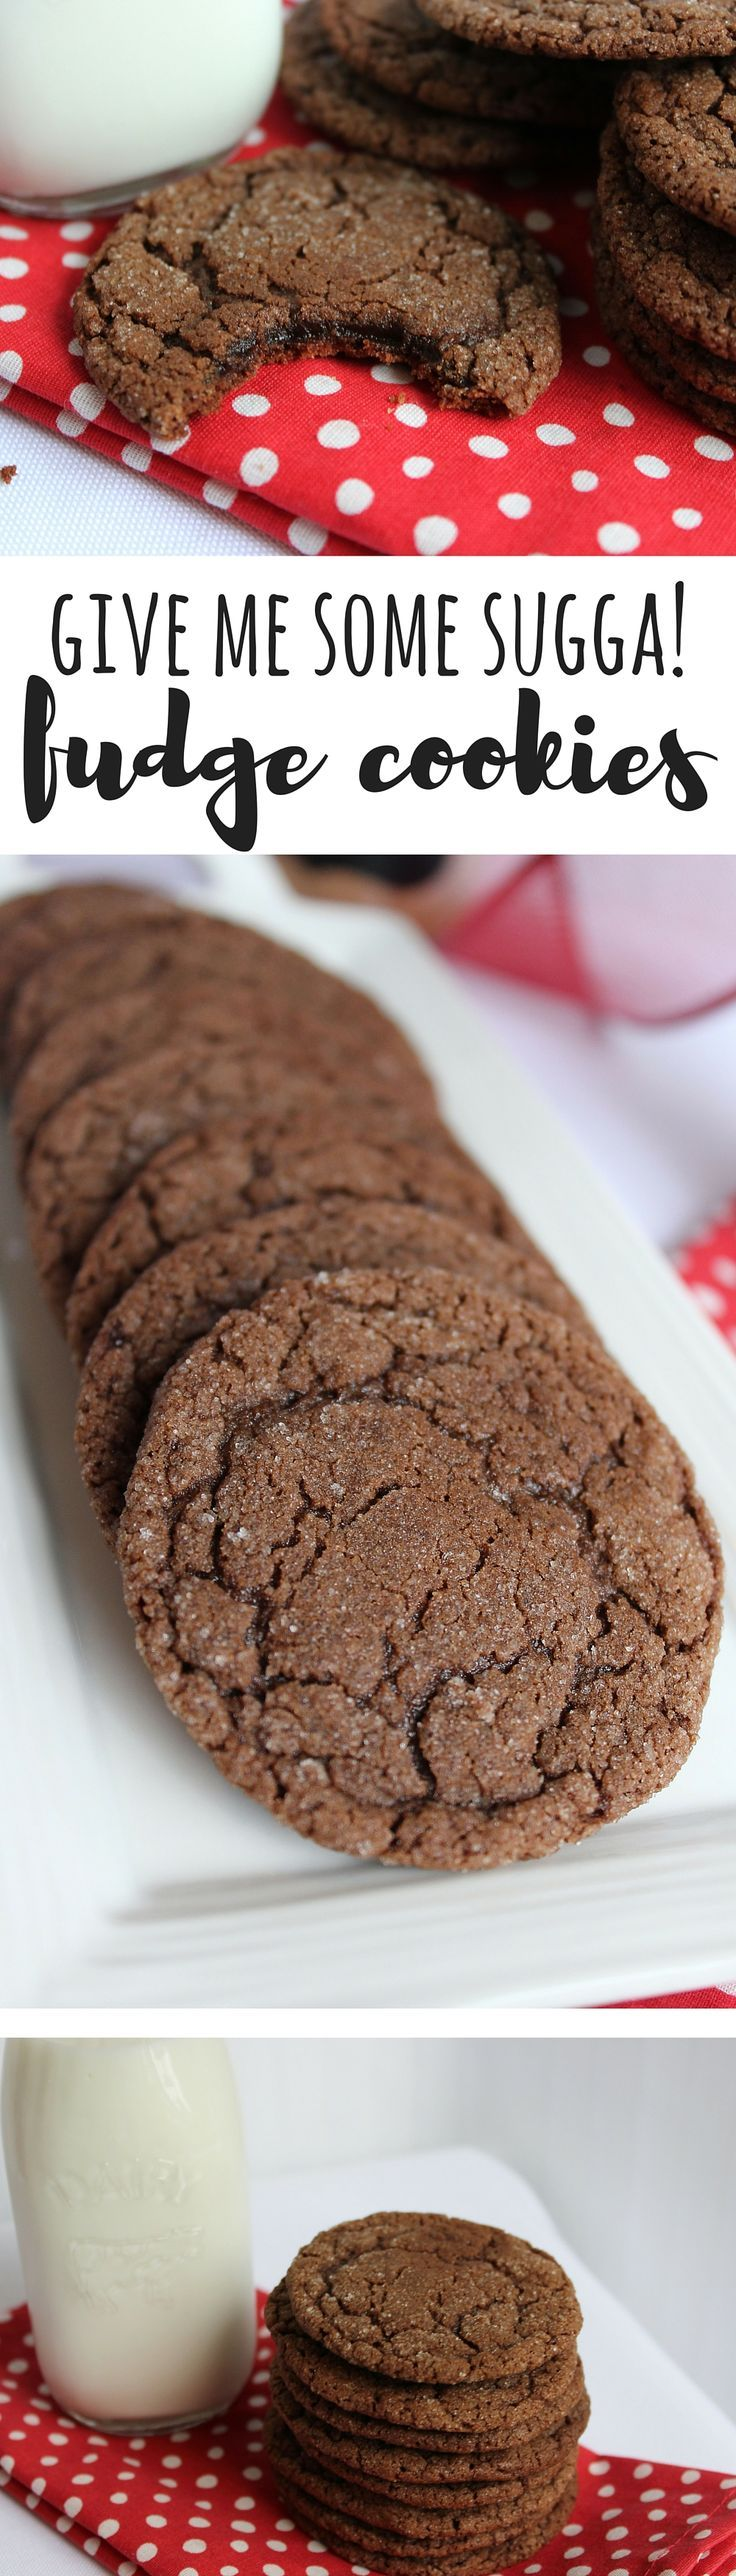 """What a treat! These are the perfect chocolate fudge cookie. They're easy to throw together, simple ingredients and oh so delicious."""